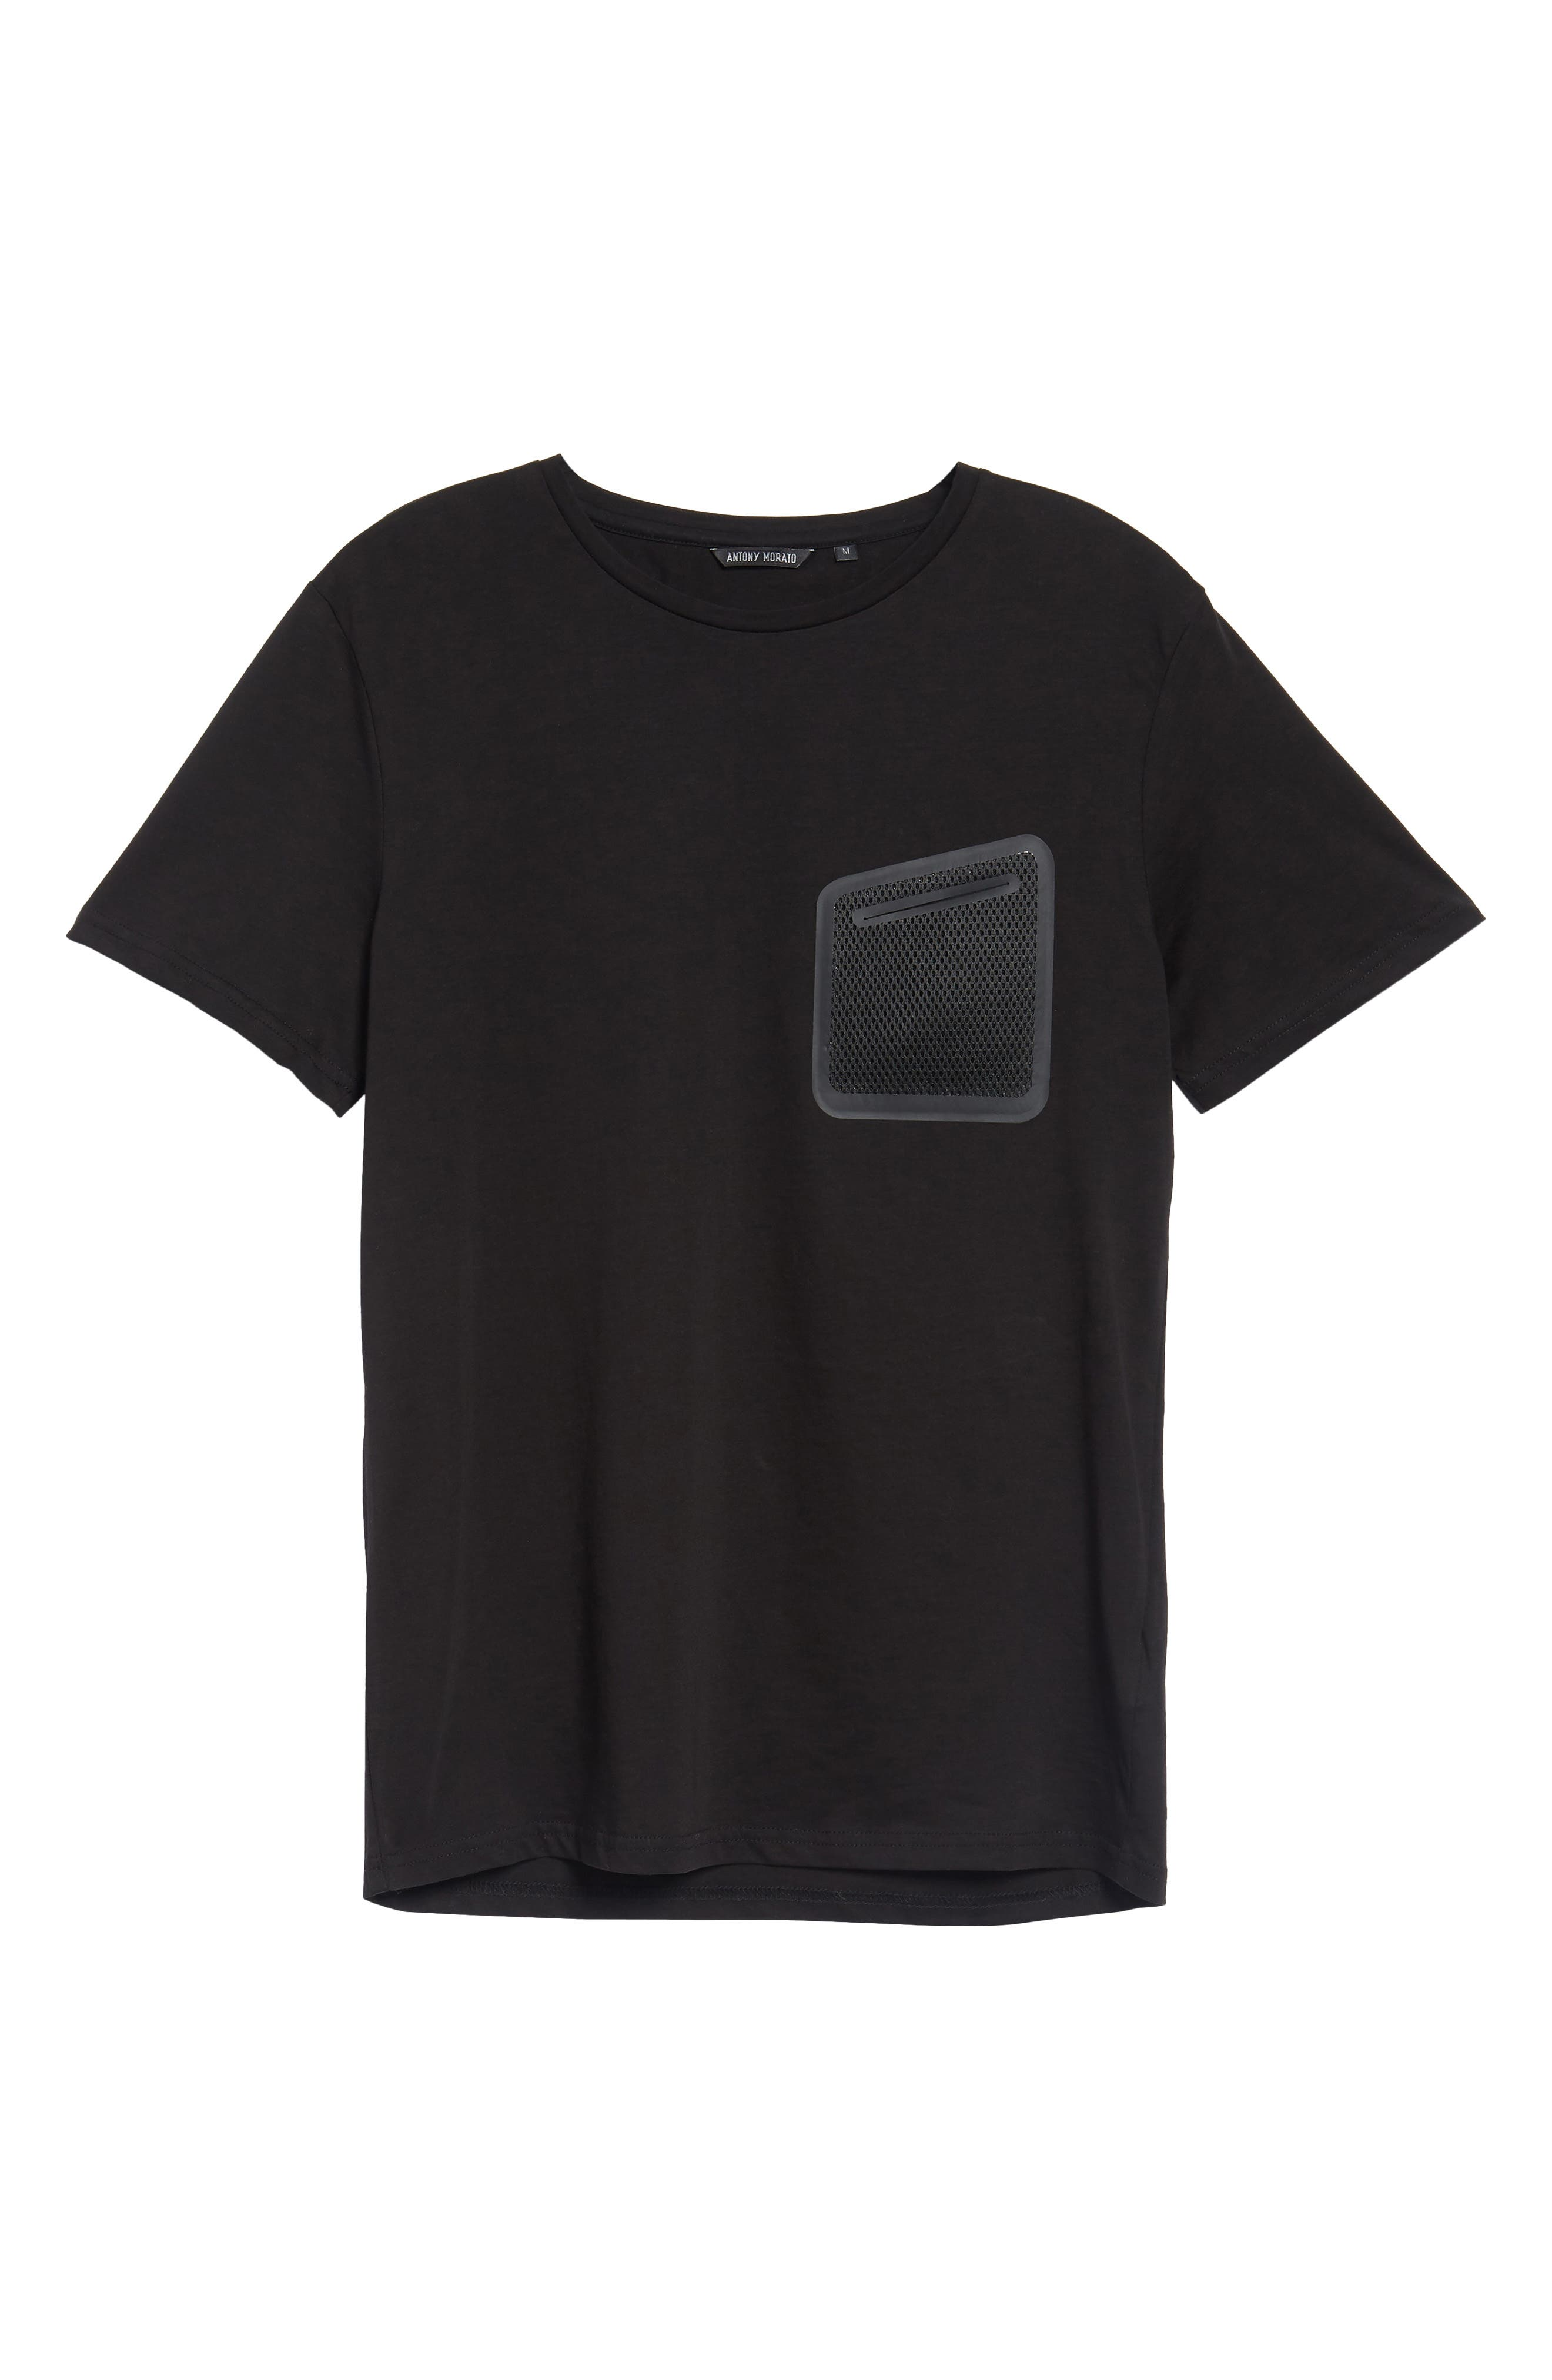 Mesh Pocket T-Shirt,                             Alternate thumbnail 6, color,                             001